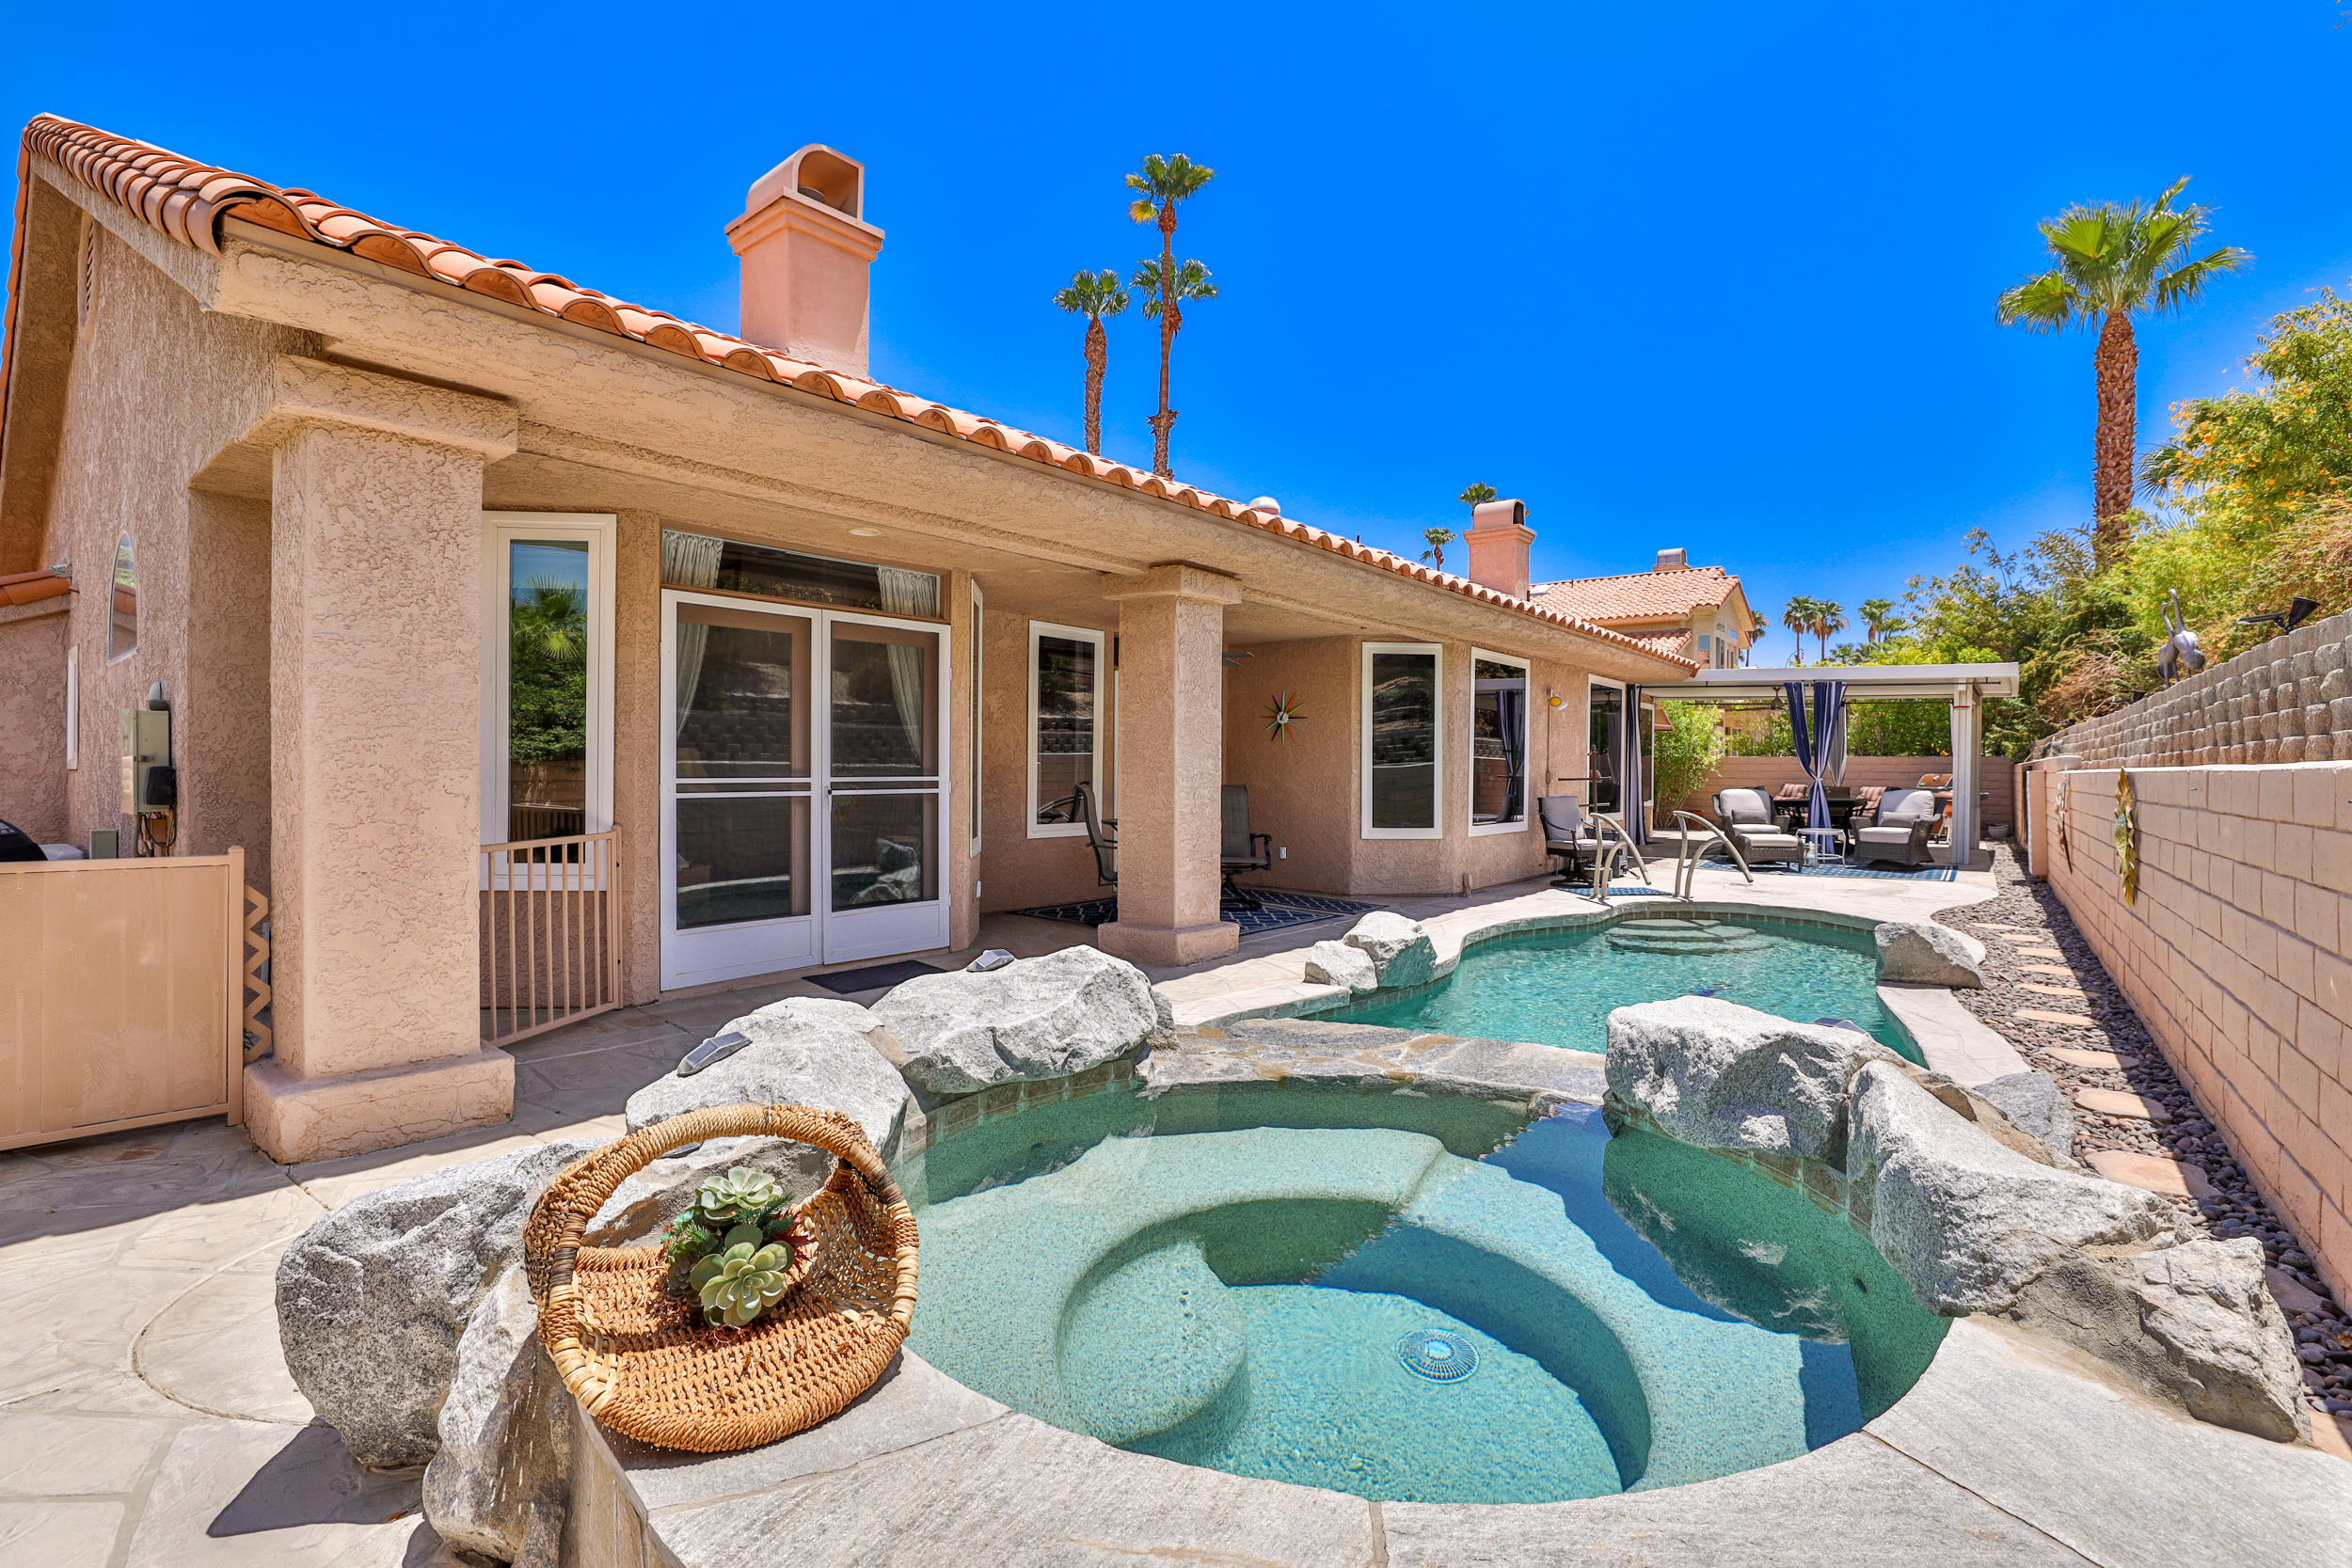 Introducing this beautifully updated home in The Links neighborhood in Desert Falls Country Club. Boasting over 2,500 sqft., the home is equipped with 4 bedrooms(one being used as a den), a large living and dining area-plus a large family room that is open to the kitchen. The large primary suite, with its own fireplace freestanding tub, custom cabinet and picturesque views of the pool/backyard, will be the perfect way to enjoy the comfort of your desert oasis. The kitchen is complete with beautiful granite counters with counter top seating, stainless steel appliances, and ample amount of cabinets for all your kitchen needs. Windows galore, multiple French doors and solar tube creates maximum natural sunlight to permeate throughout the kitchen, family room, dining room, living room, and master bedroom. The tranquil backyard is outfitted with pergola-style gazebo awning with privacy drapes, stamped concrete, pebble tec pool/spa with exquisite rock features and mature landscaping. Homeownership includes HOA maintained front yard, fitness, tennis, pickle ball, bocce ball, horse shoes, and ladder toss. The fitness facility includes circuit machines, free weights, aerobic machines, and classes. Desert Falls, conveniently located mid-valley with easy I-10 access, close proximity to groceries, dining, and retail. This truly is a one-of-a kind property!